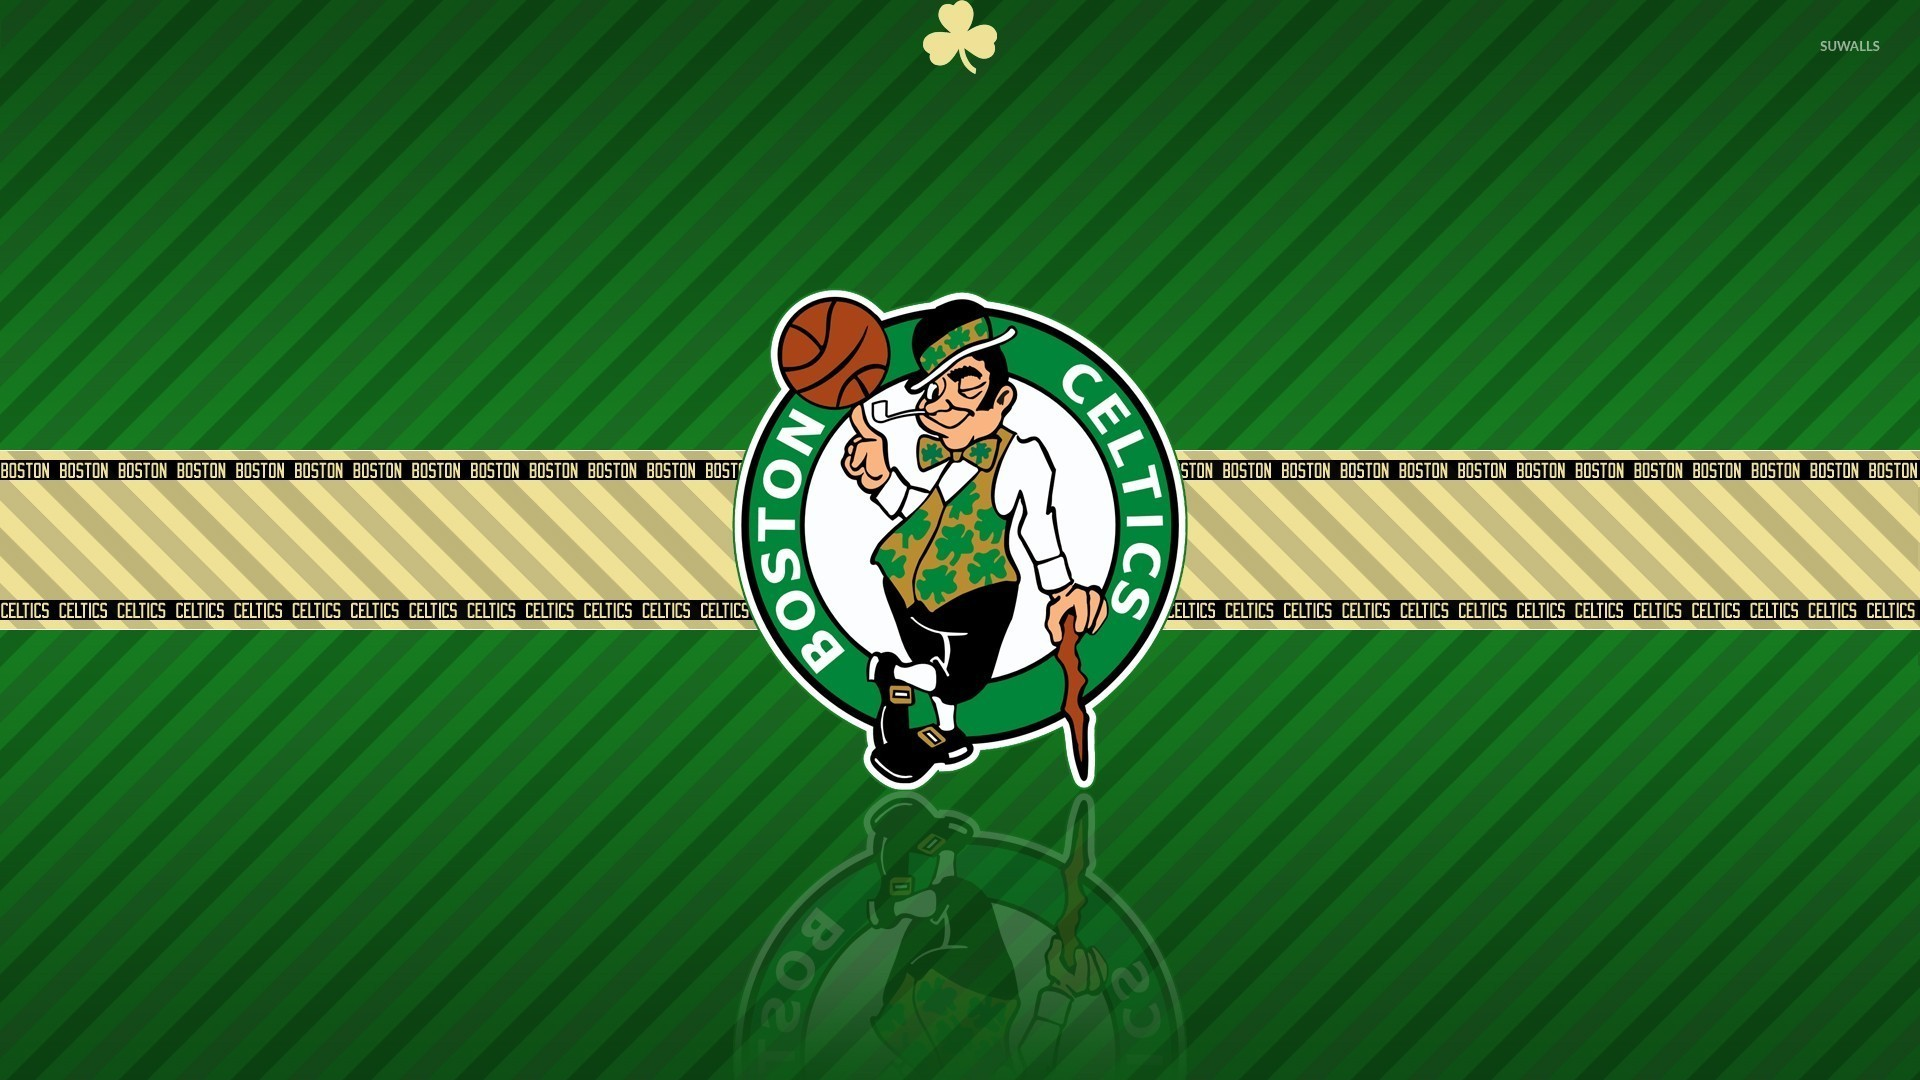 1920x1080 Boston Celtics logo wallpaper